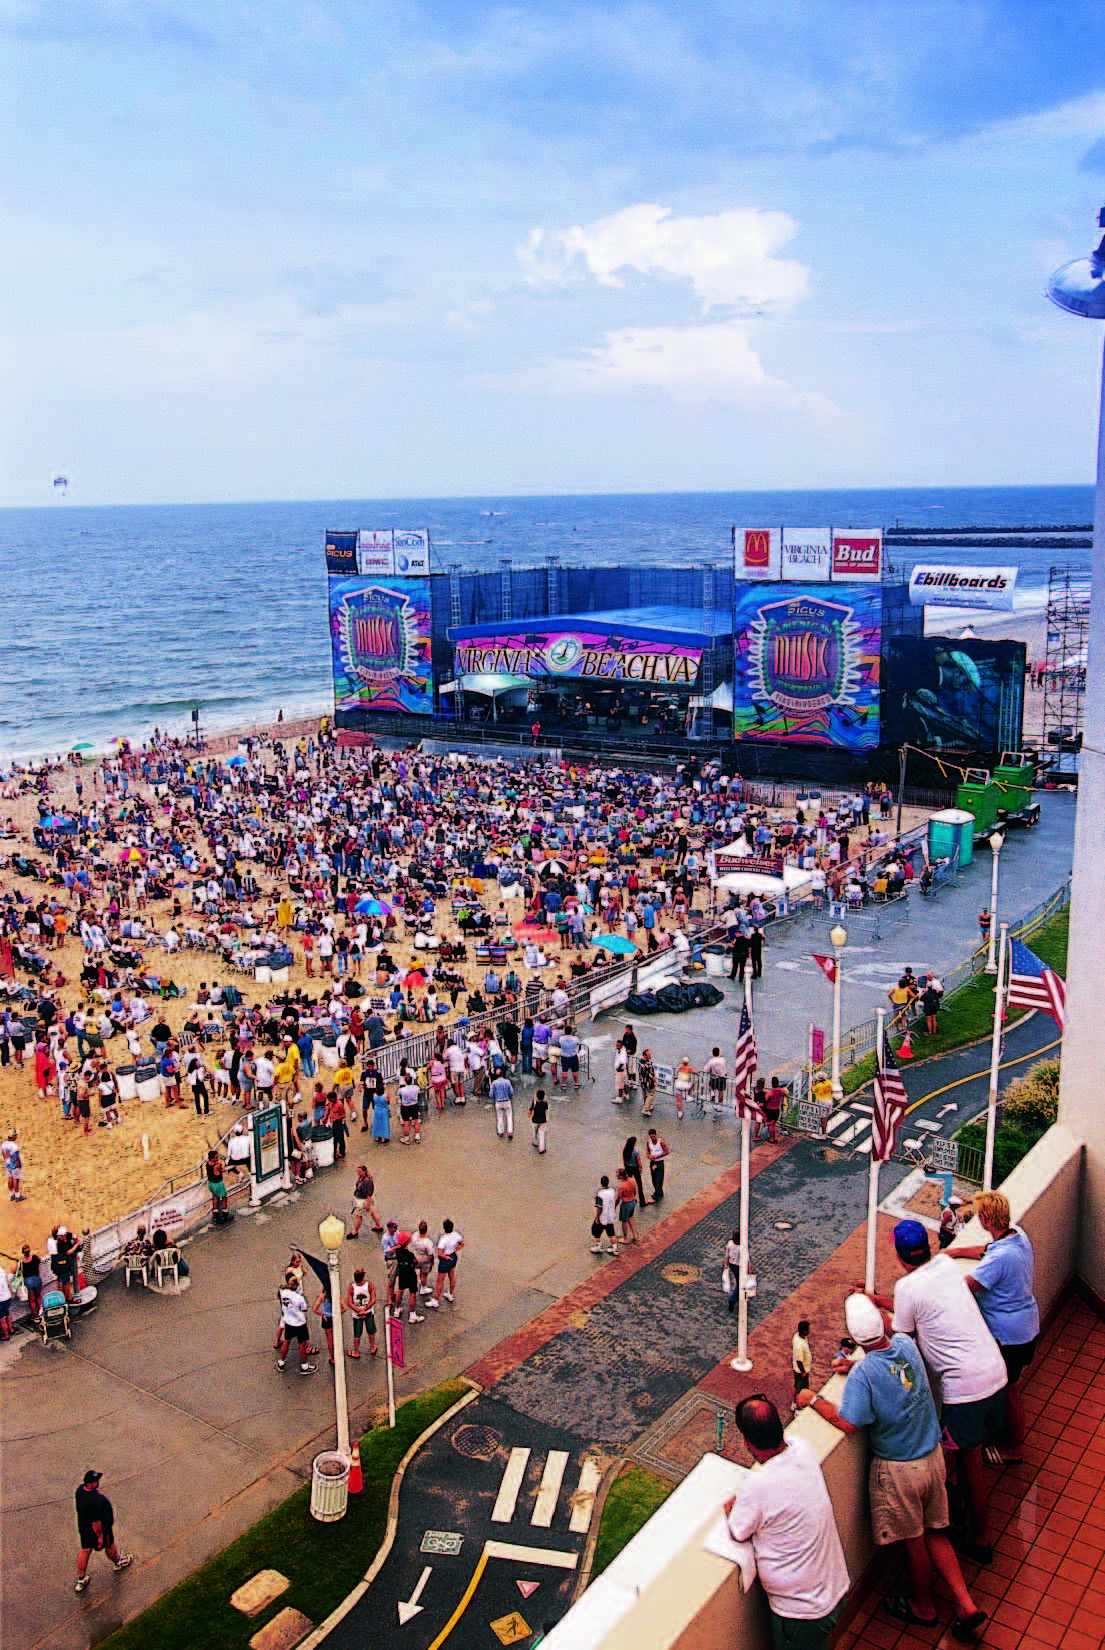 virginia beach concerts | Places To Visit | Virginia beach, Virginia